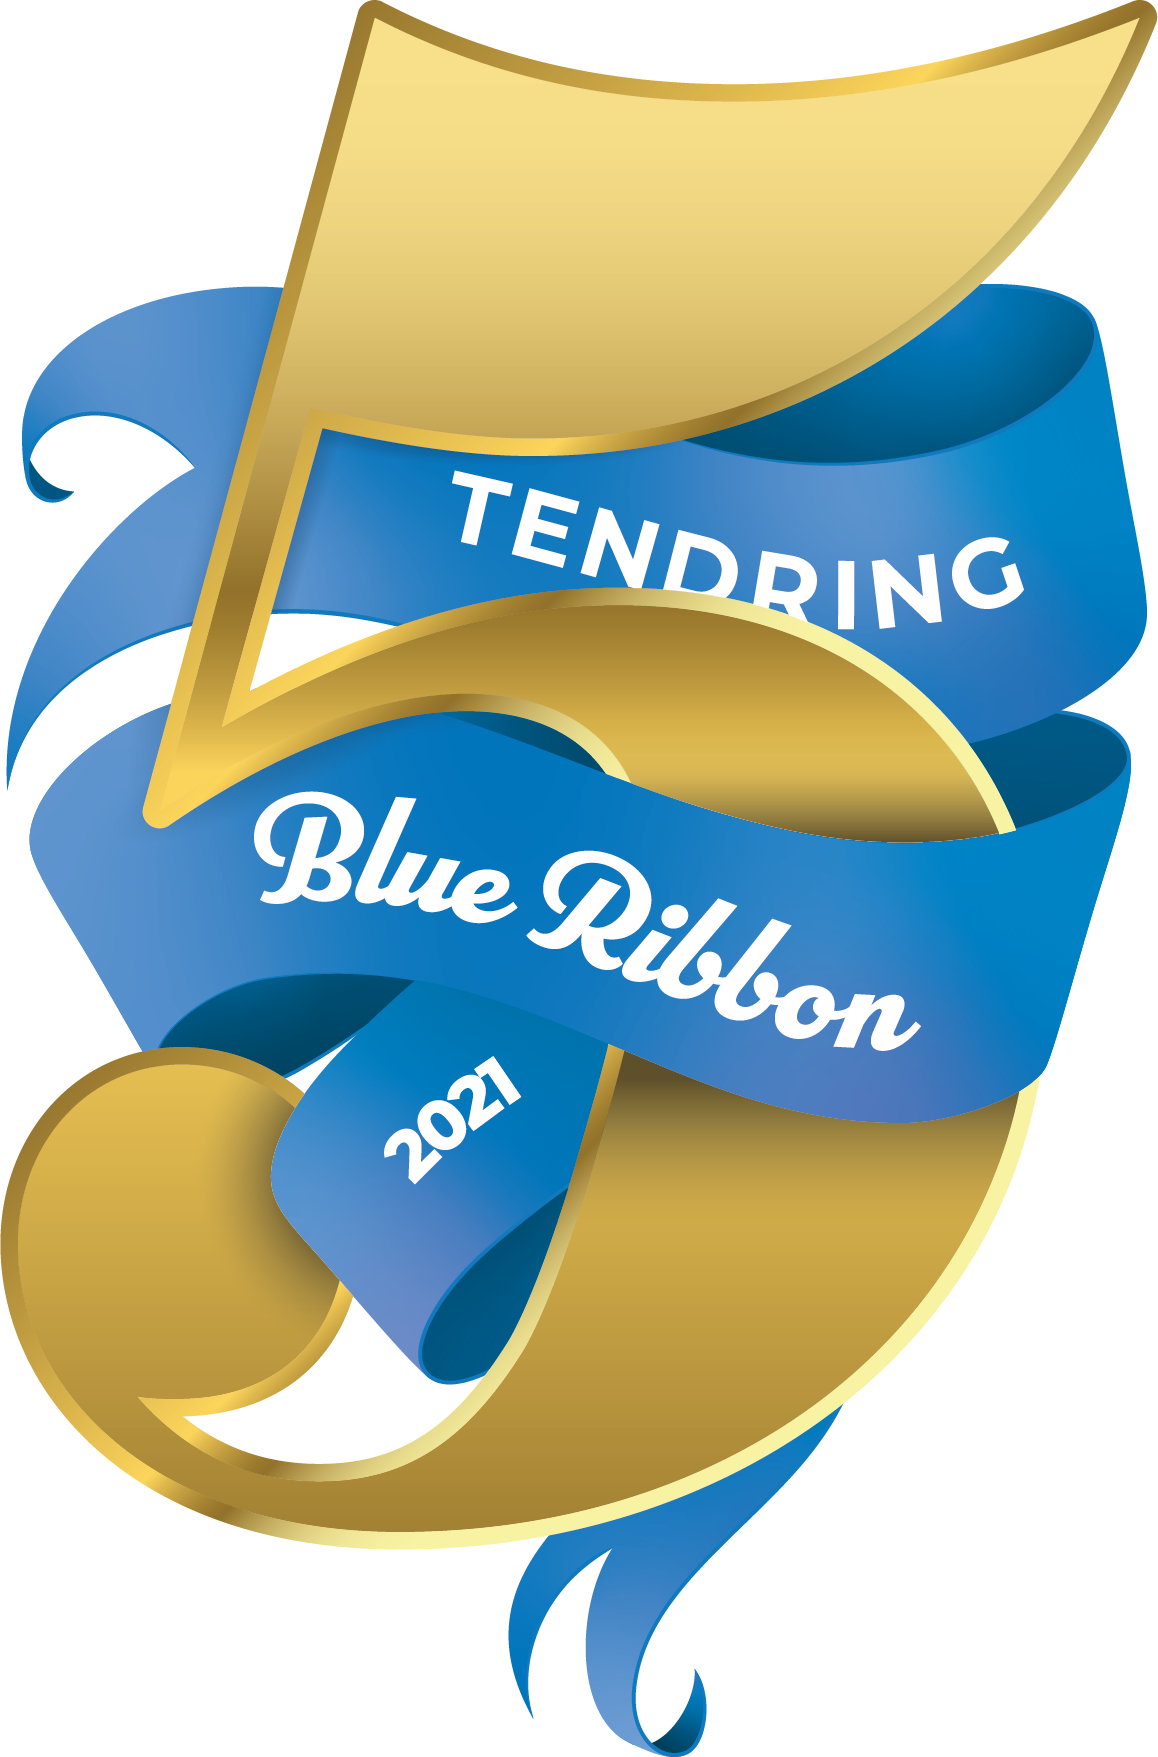 Tendring Blue Ribbon